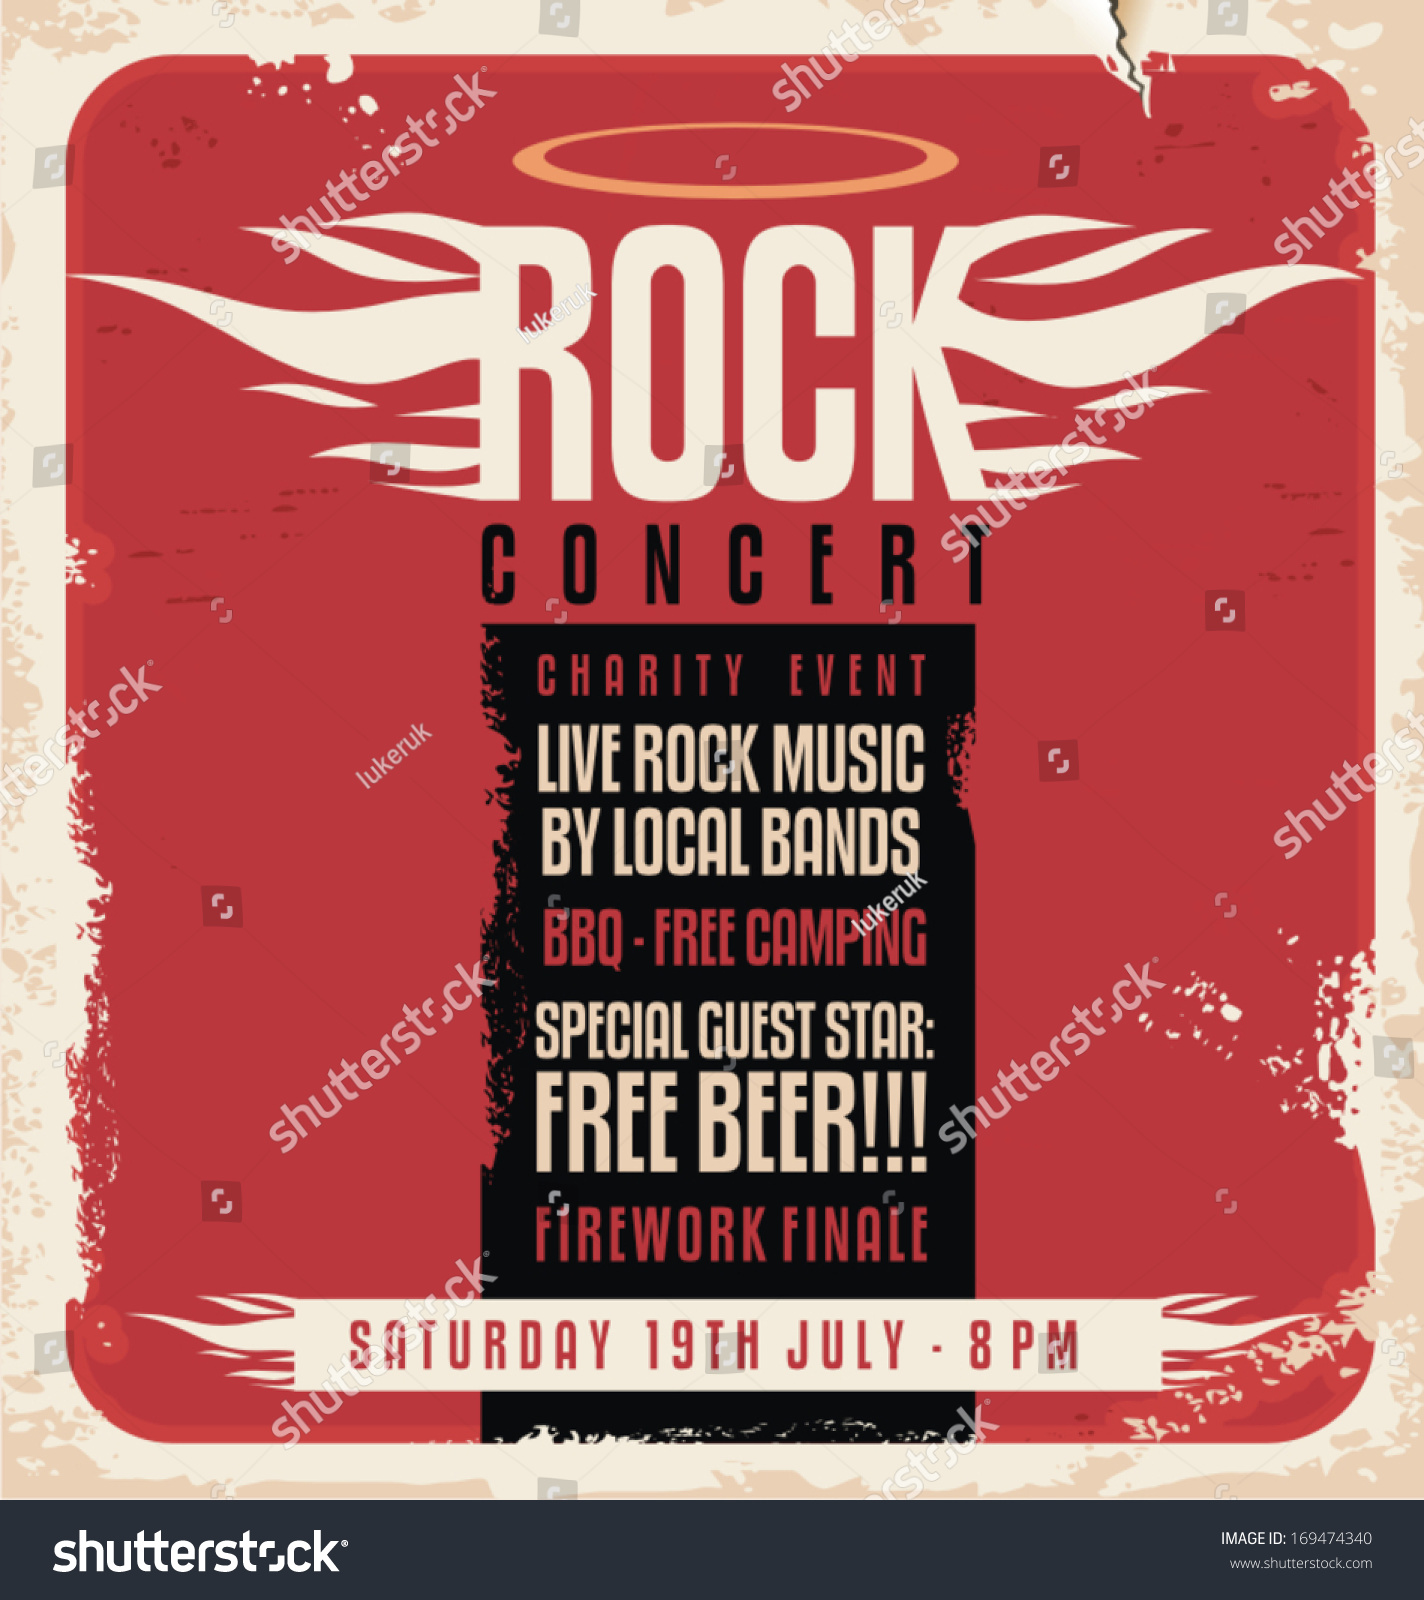 70s poster design template - Rock Concert Retro Poster Design Template On Old Paper Texture 169474340